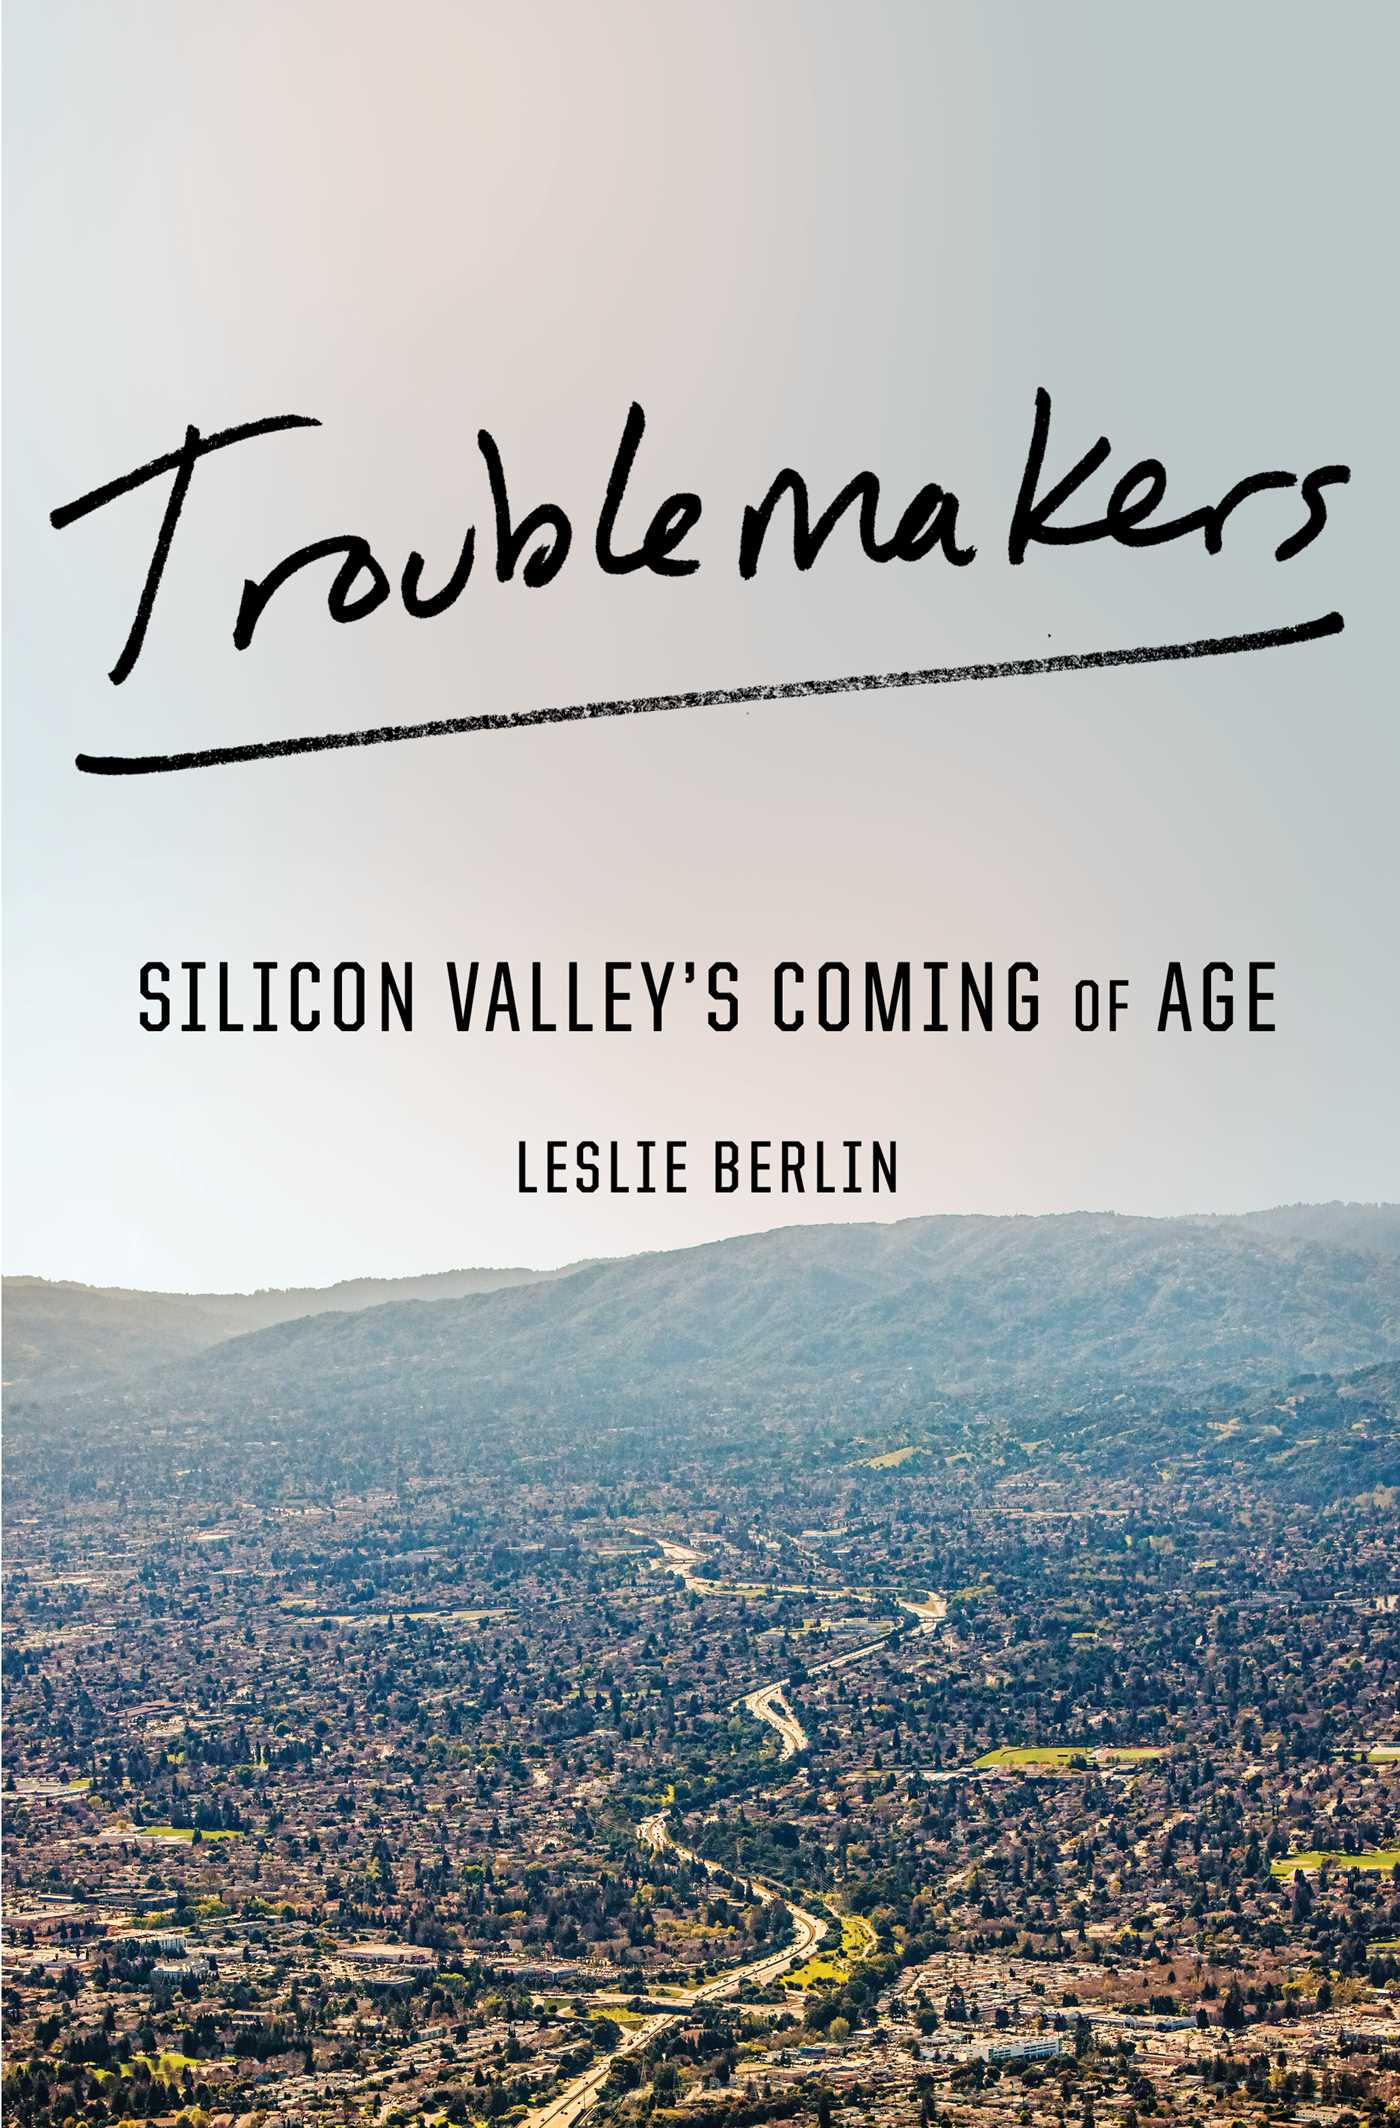 Inhalation And Exhalation Diagram Picture Book Covers Troublemakers By Leslie Berlin Official Publisher Page Cover Image